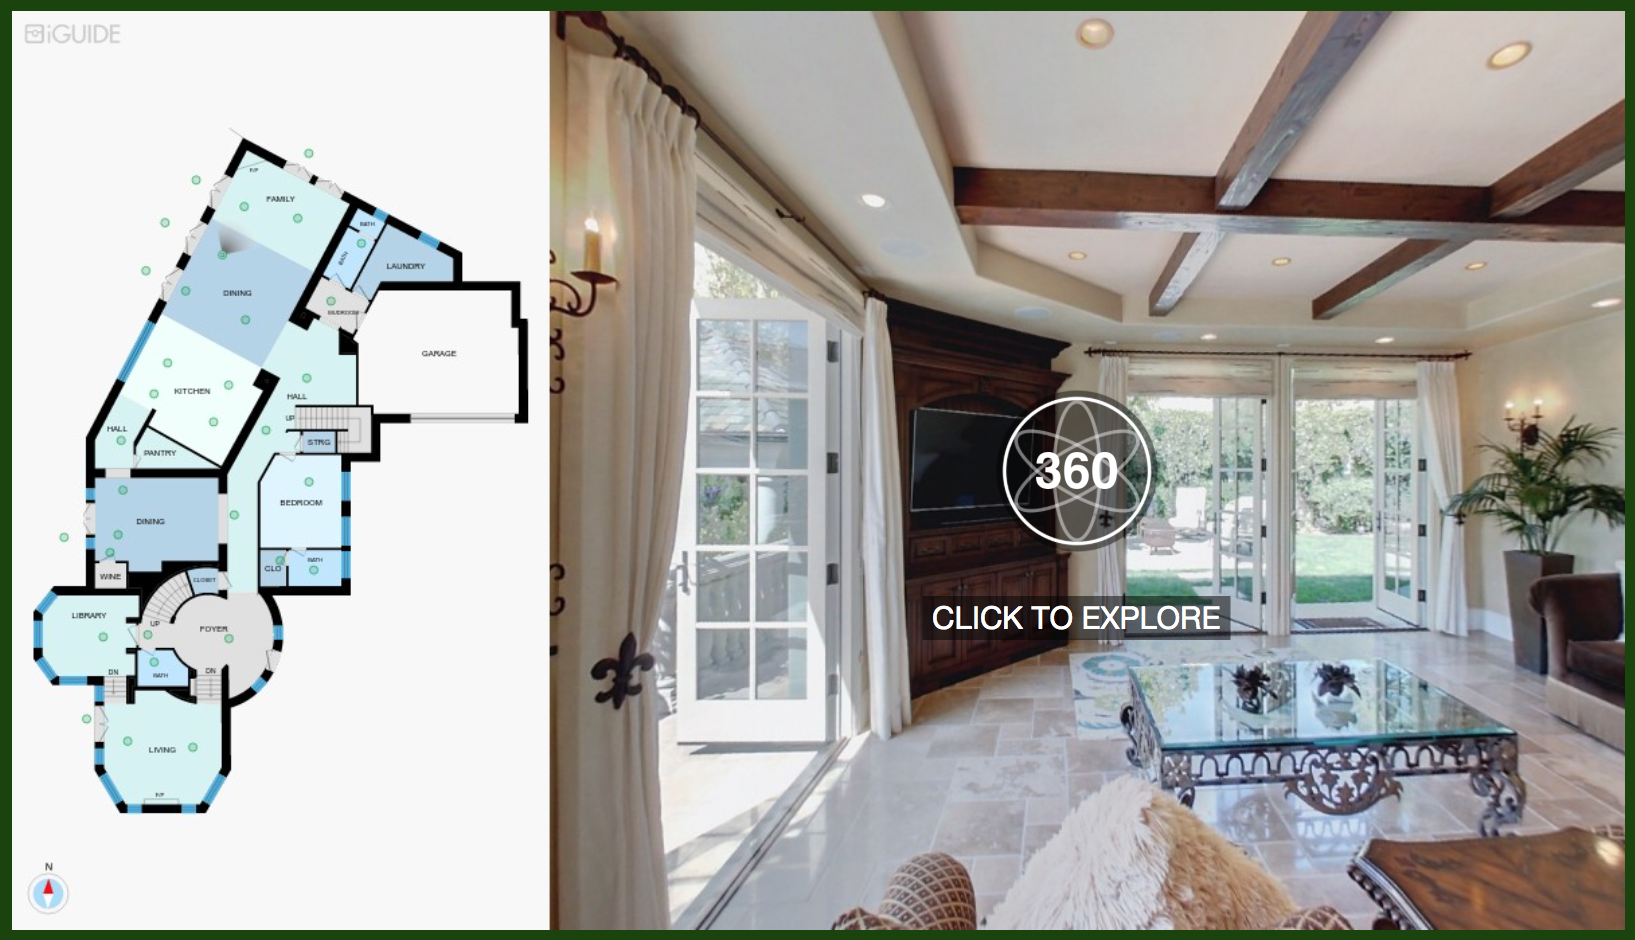 iGuide 360 - iGuide is an immersive property experience that offers users an incredible understanding and perception of the space.Created using our exclusive iGuide camera system and software, we elegantly weave the data into floor plans, 360 degree virtual views, photos, room dimensions and property areas.